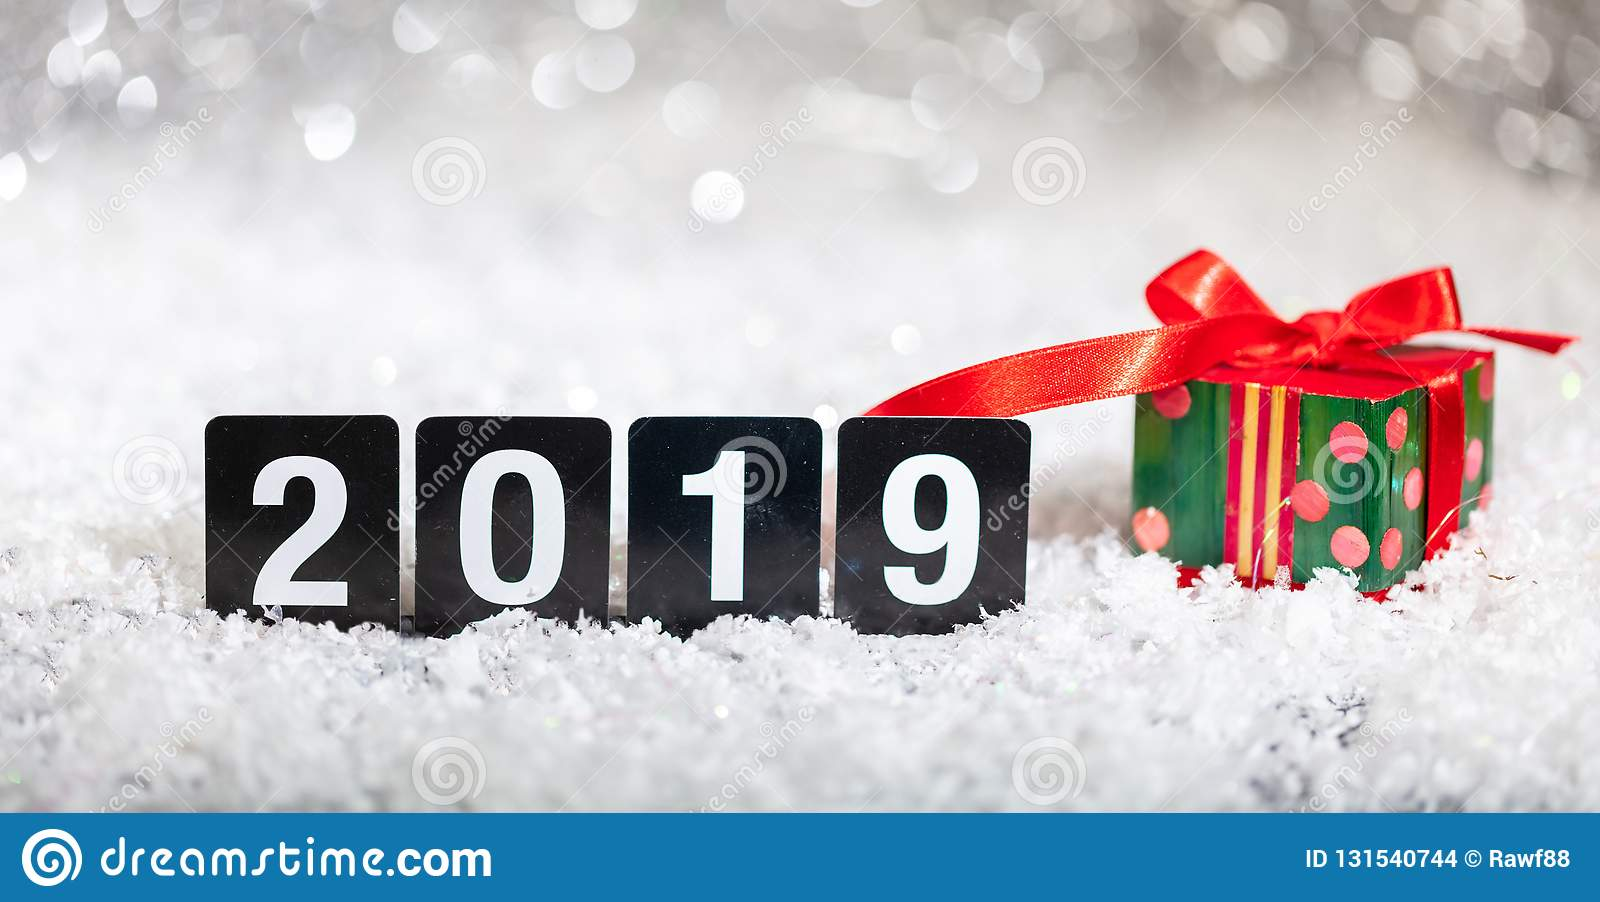 Christmas gift box and new year 2019, on snow, abstract bokeh lights background